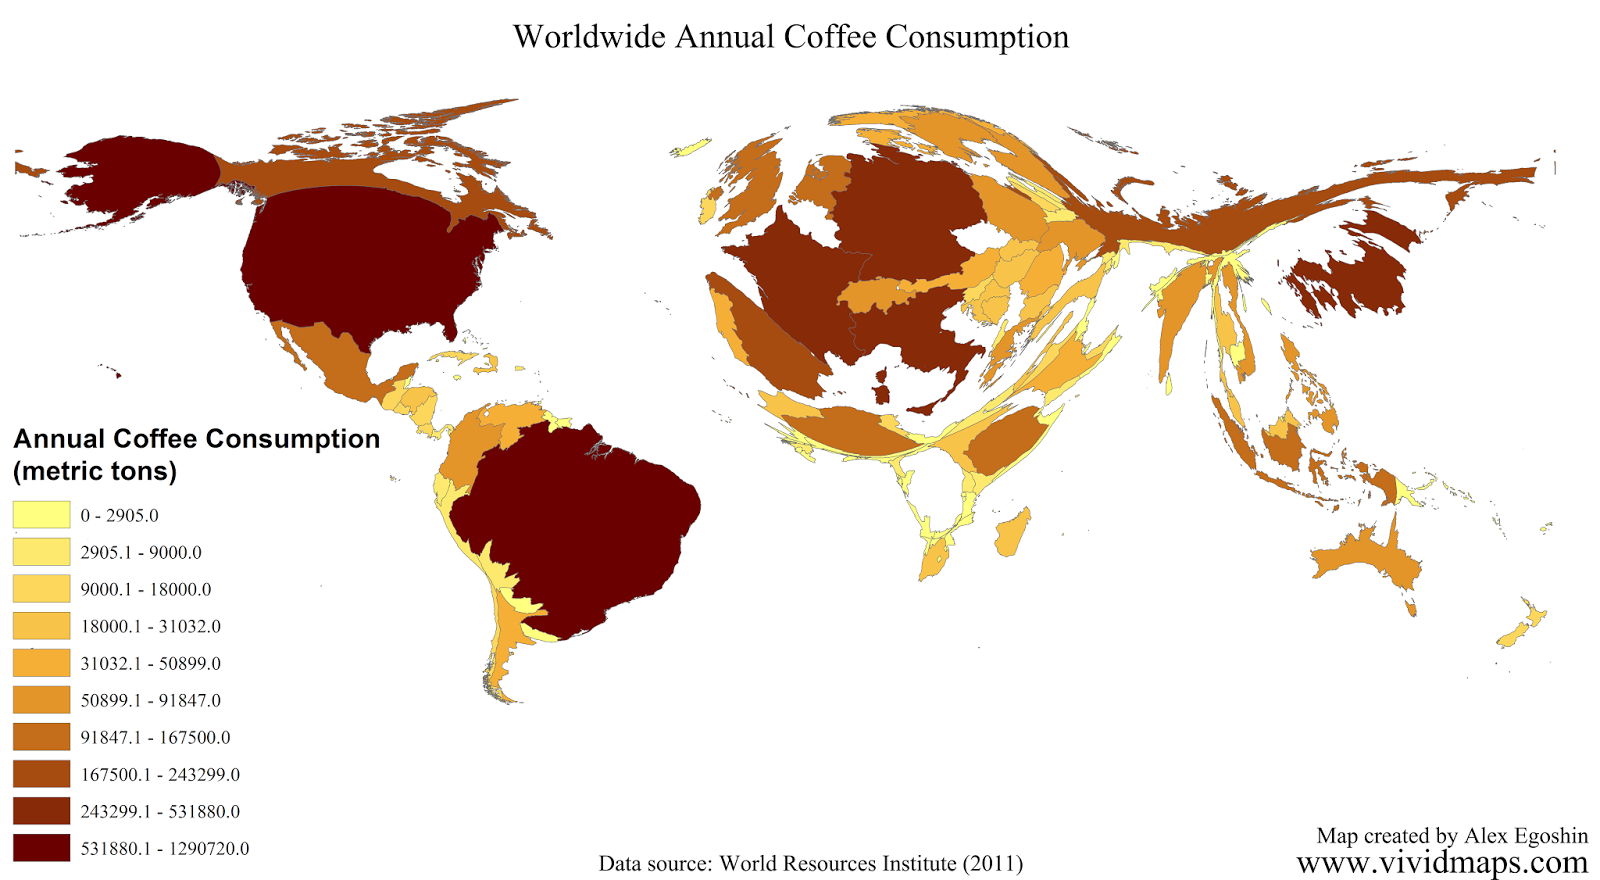 Worldwide annual coffee consumption